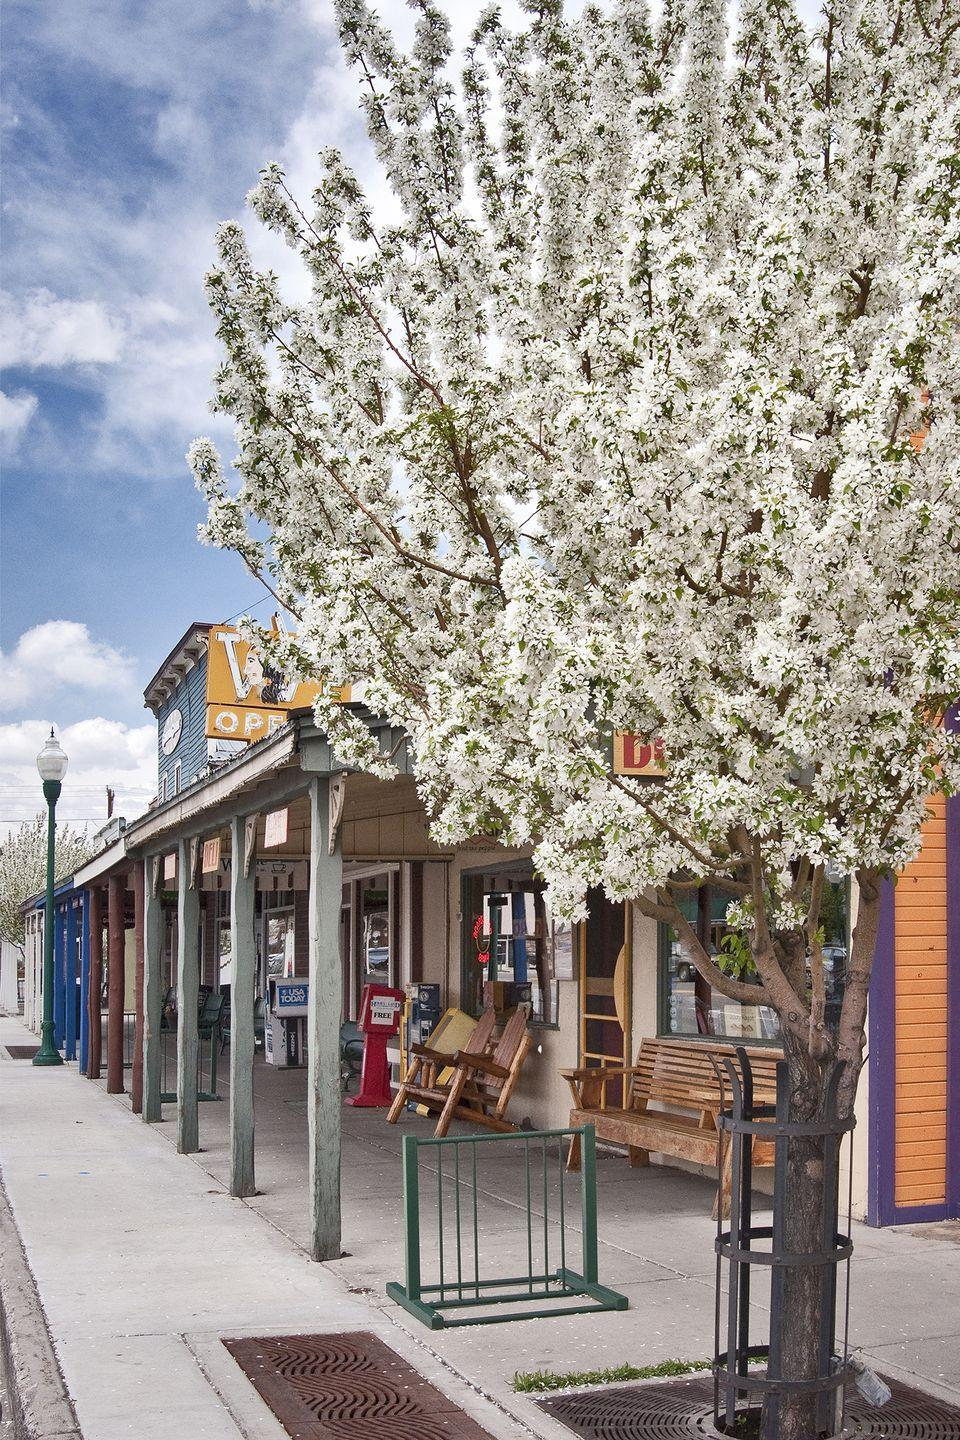 <p>With endless things to do—trying local cuisine, visiting historical sites, shopping, or just walking around with a coffee in hand—there's plenty to keep you busy for the day in a small town. </p>